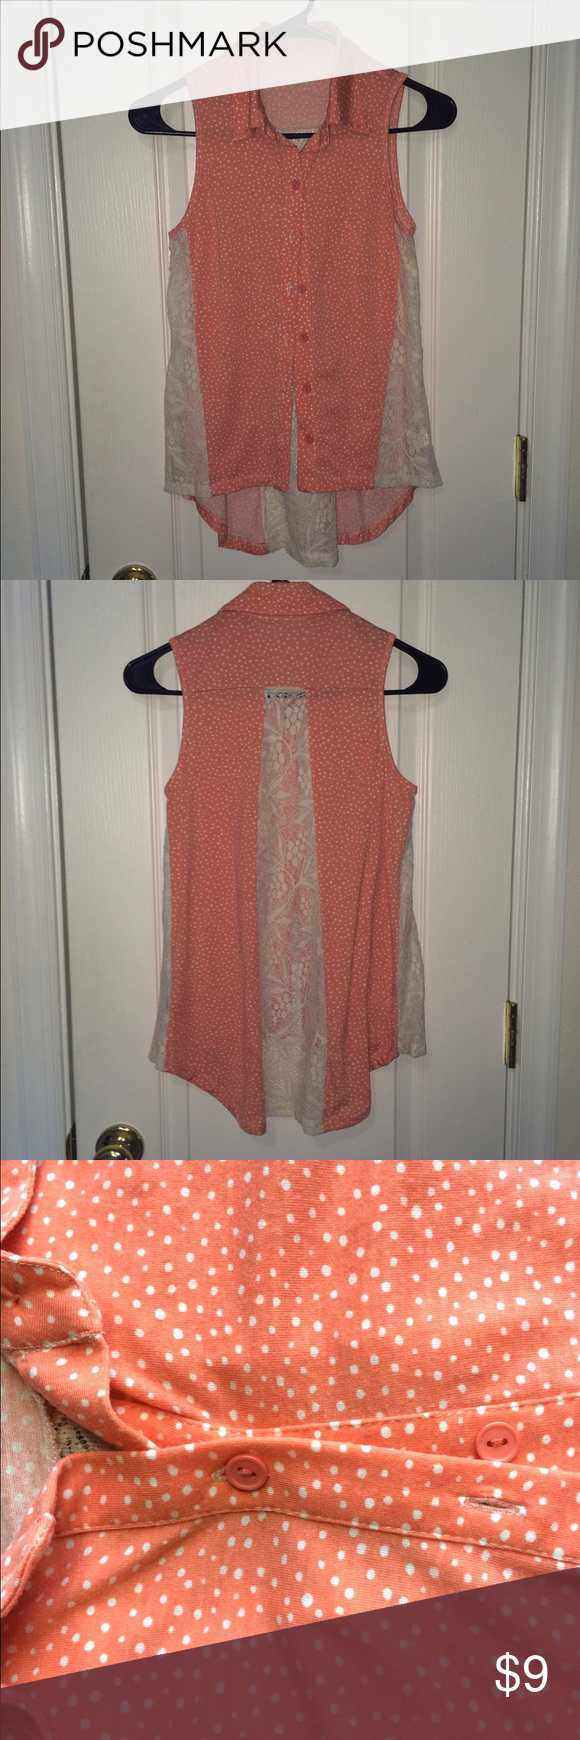 sleeveless button down blouse mixture of polka dots & lace sleeveless shirt, super cute for a summer day! looks really good paired with a pair of white pants! Mossimo Supply Co Tops Button Down Shirts